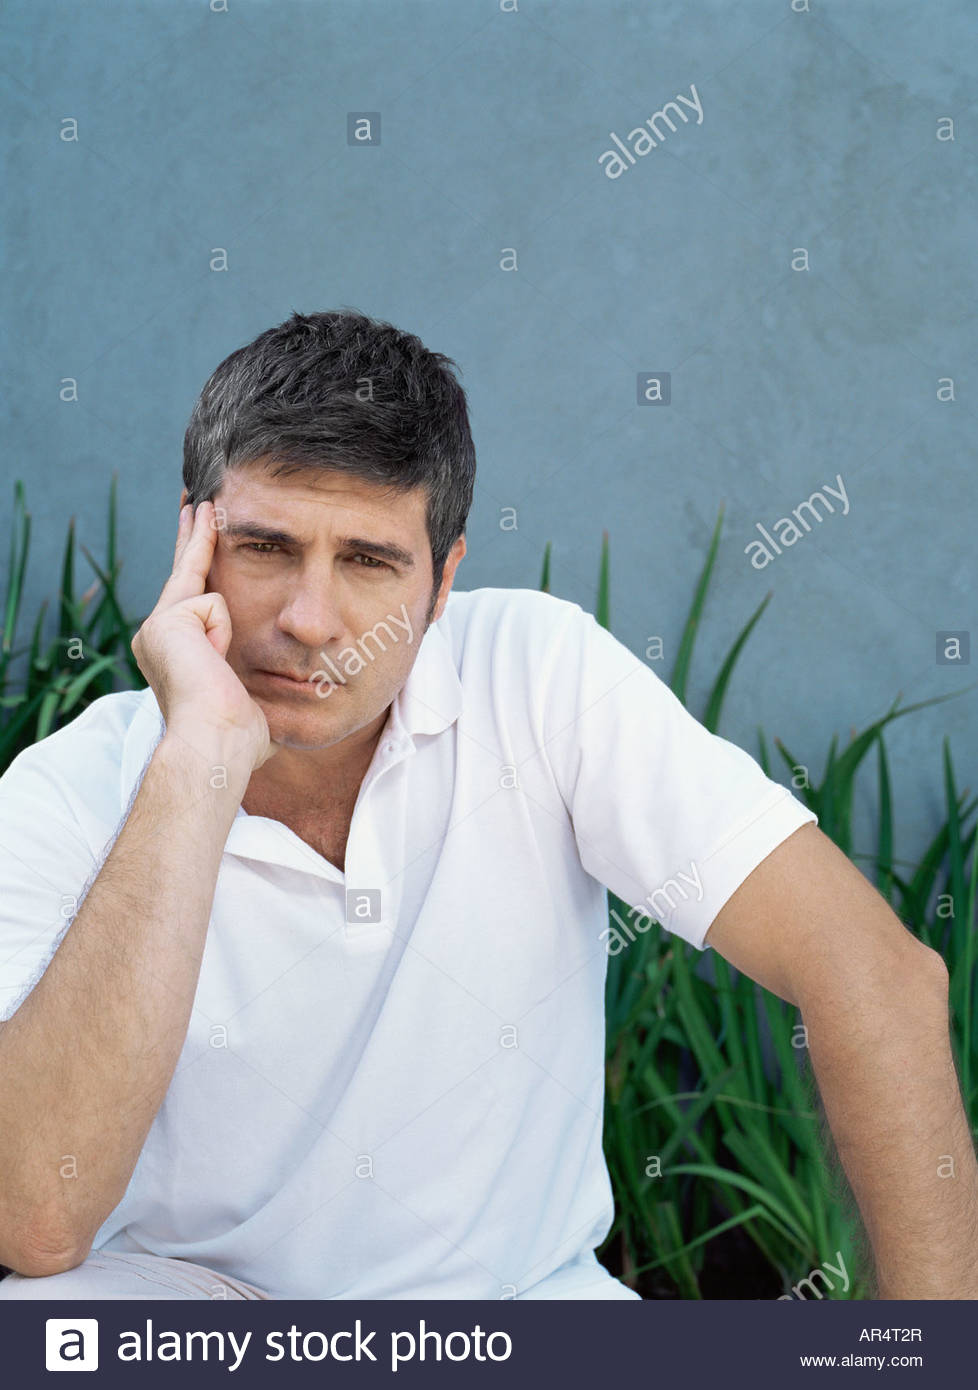 Man looking worried - Stock Image